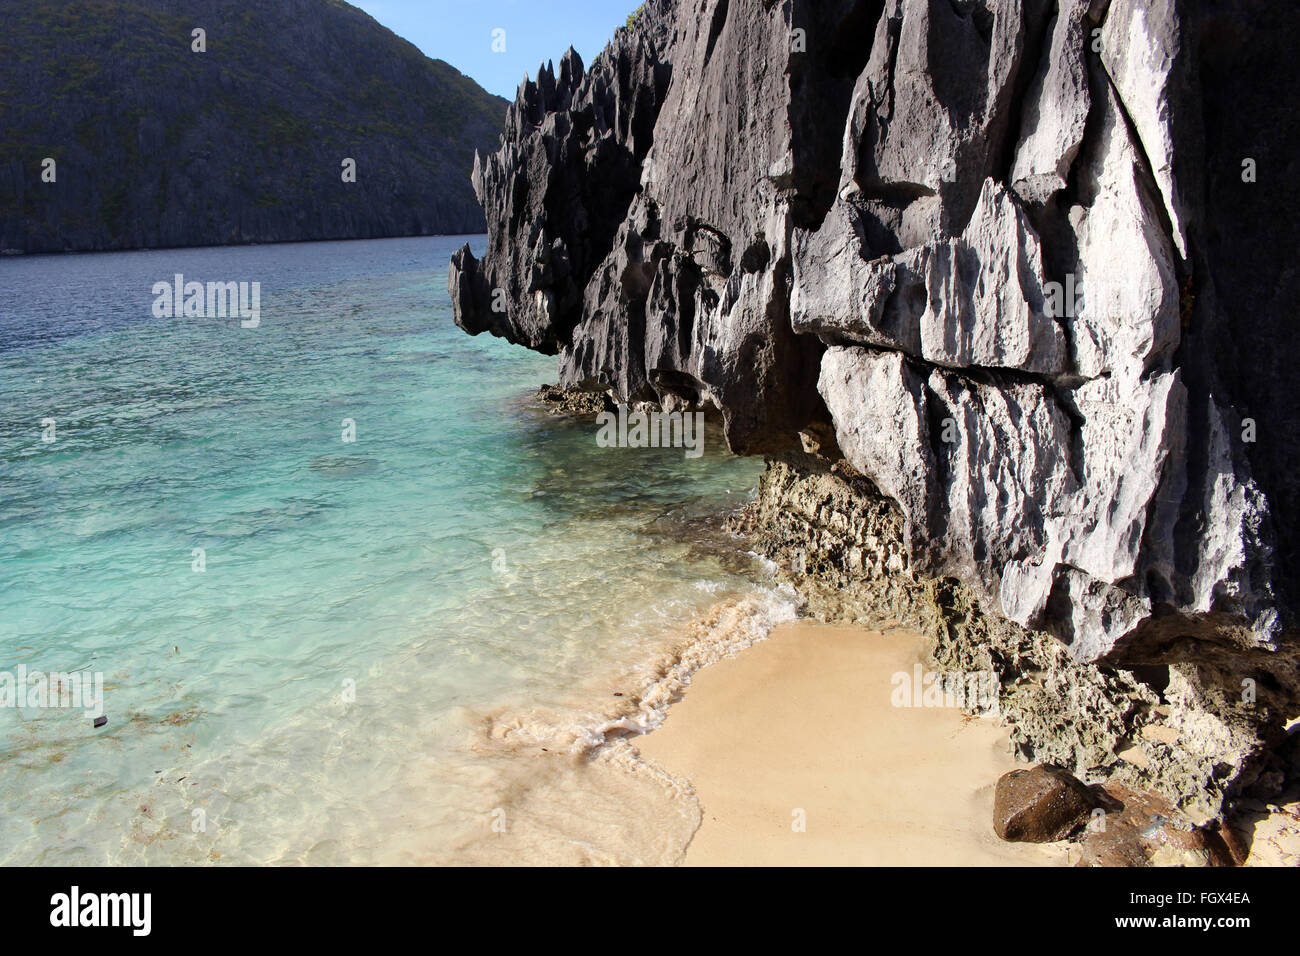 Transparent blue-green waters, golden sands and limestone in Matinloc island, in the archipelago of El Nido - Stock Image